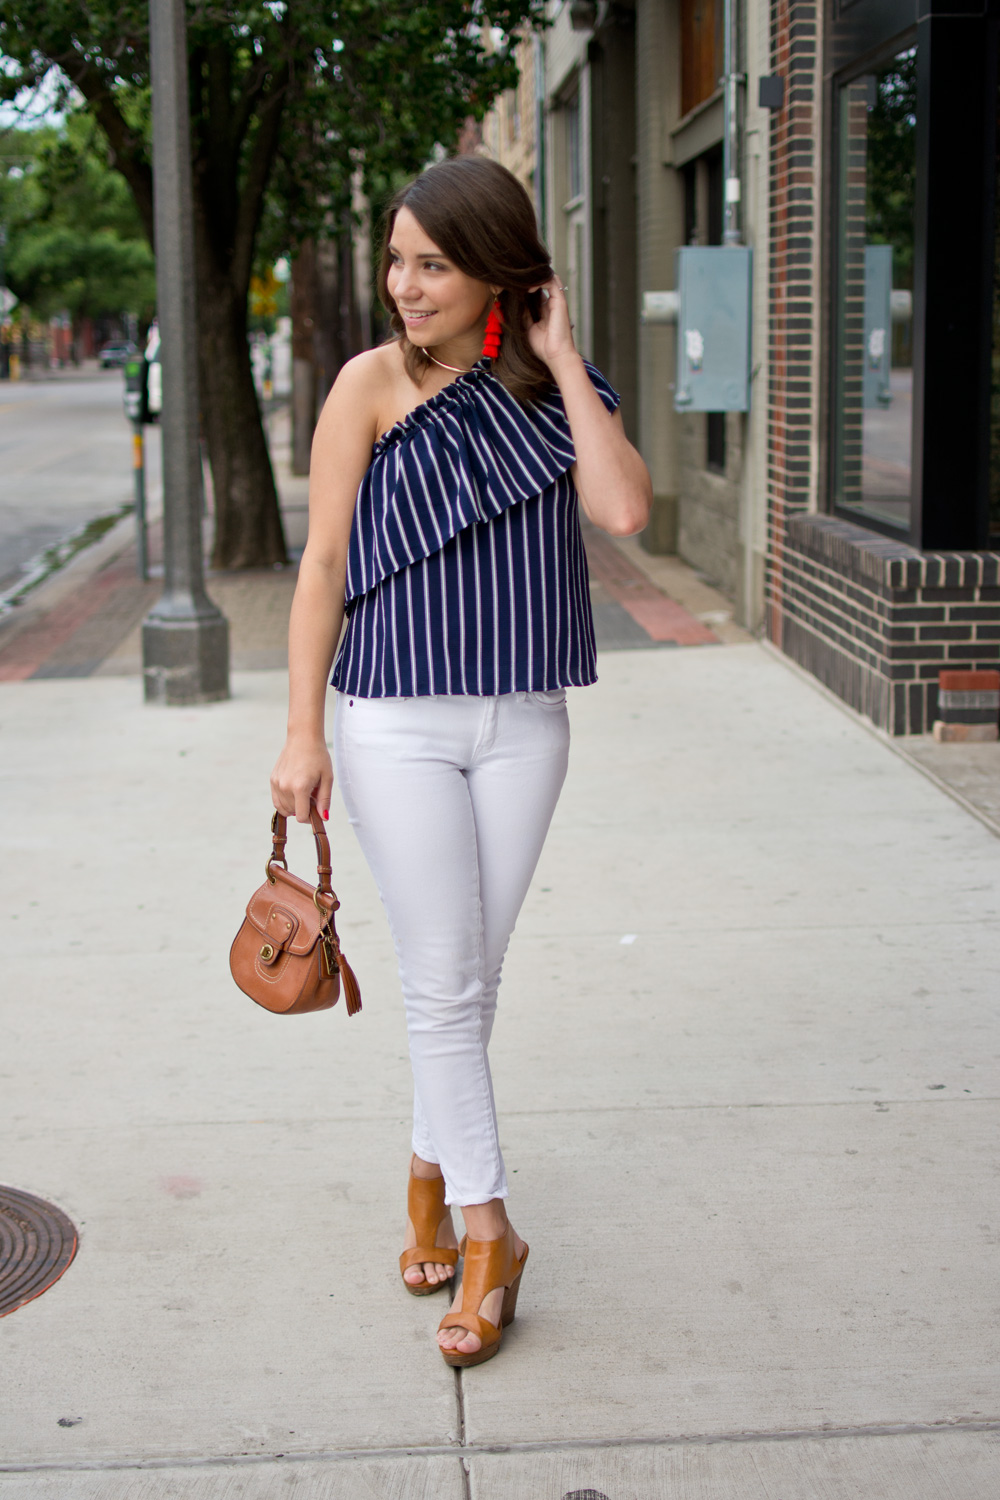 Americana Inspired outfit idea featuring white skinny jeans, a navy one shoulder top, and red tassel Baublebar earrings.